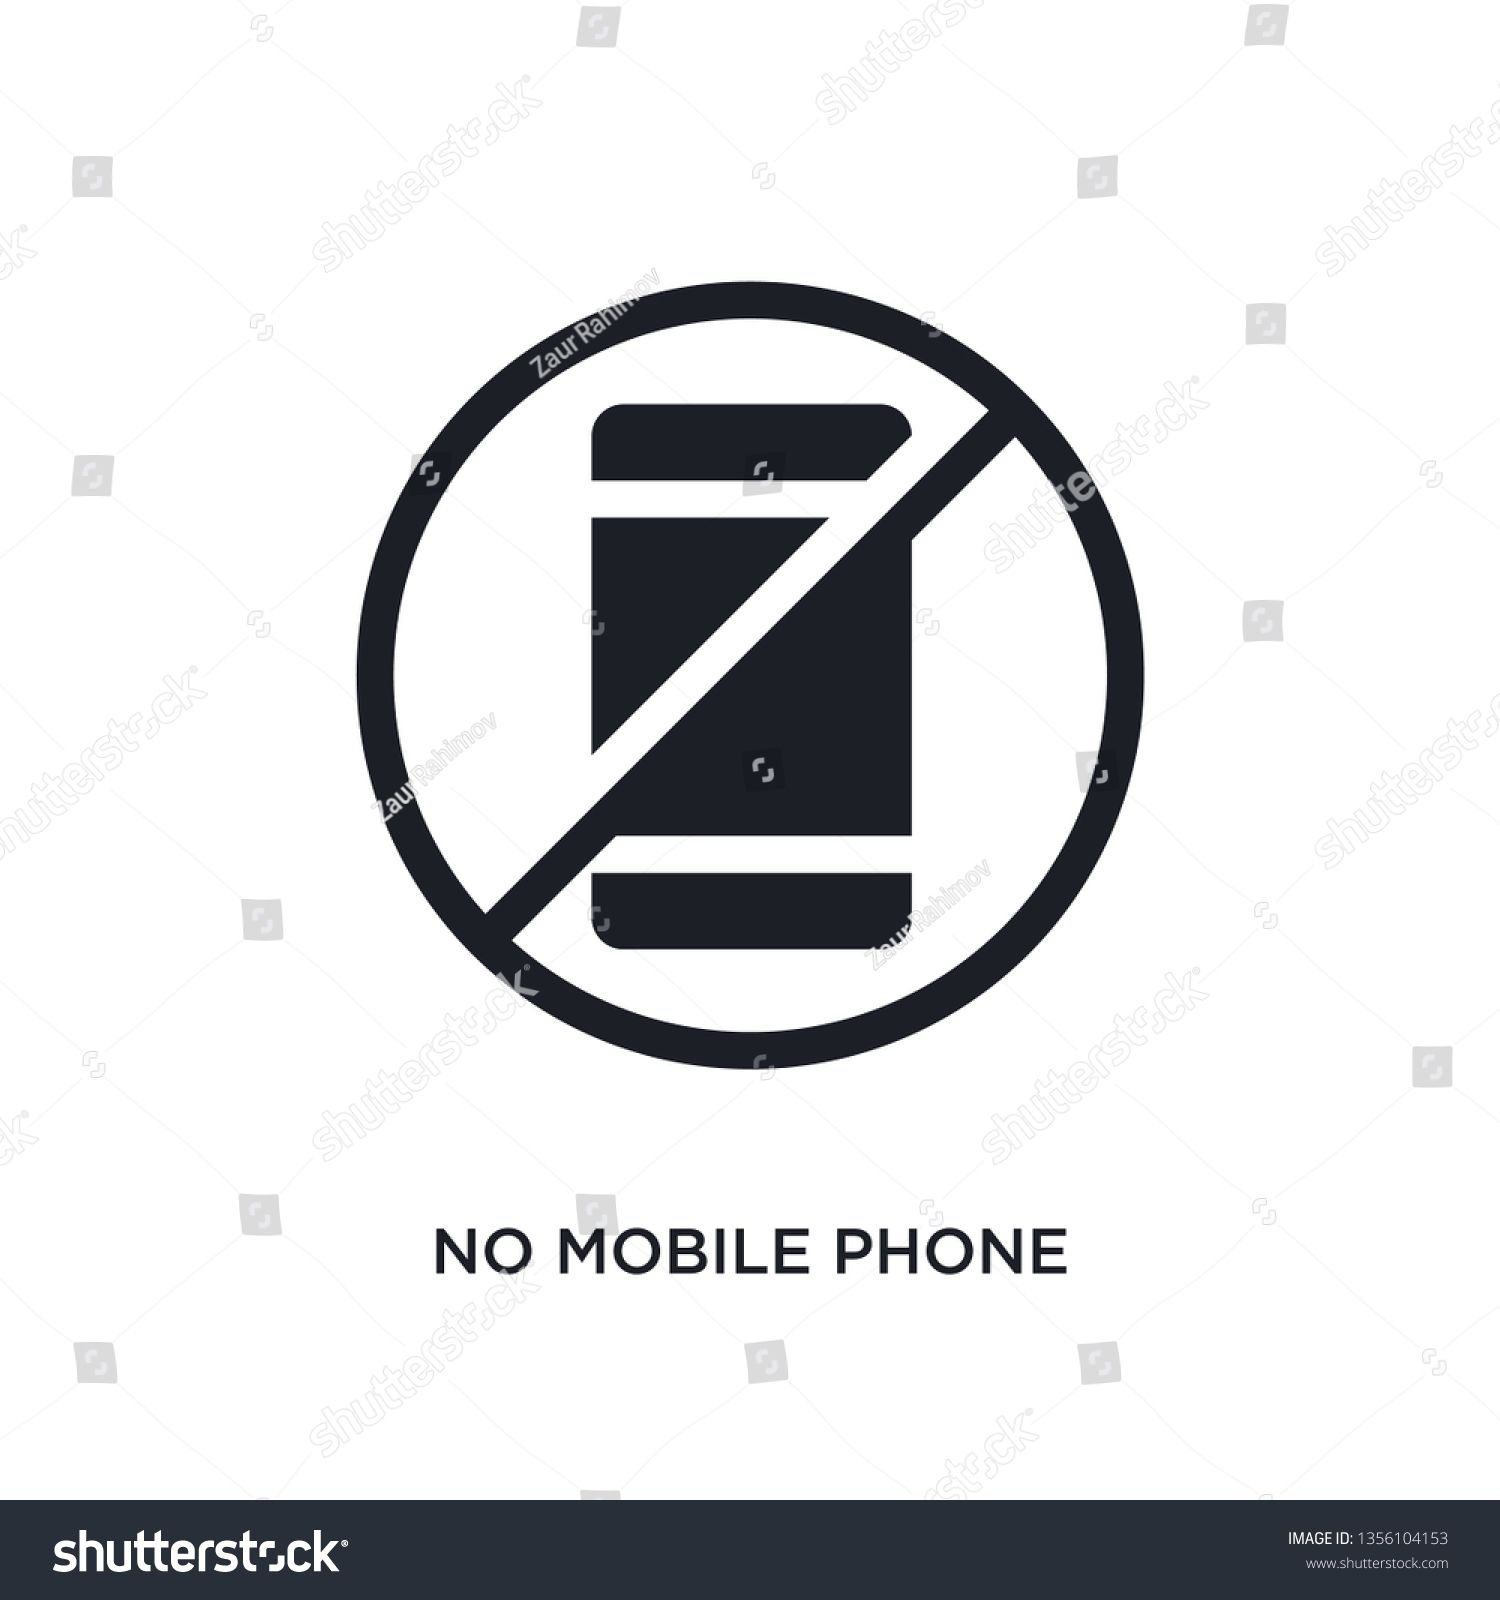 black no mobile phone isolated vector icon simple element illustration from traffic signs concept vector icons no mobile phone editable logo symbol design on white backgr...